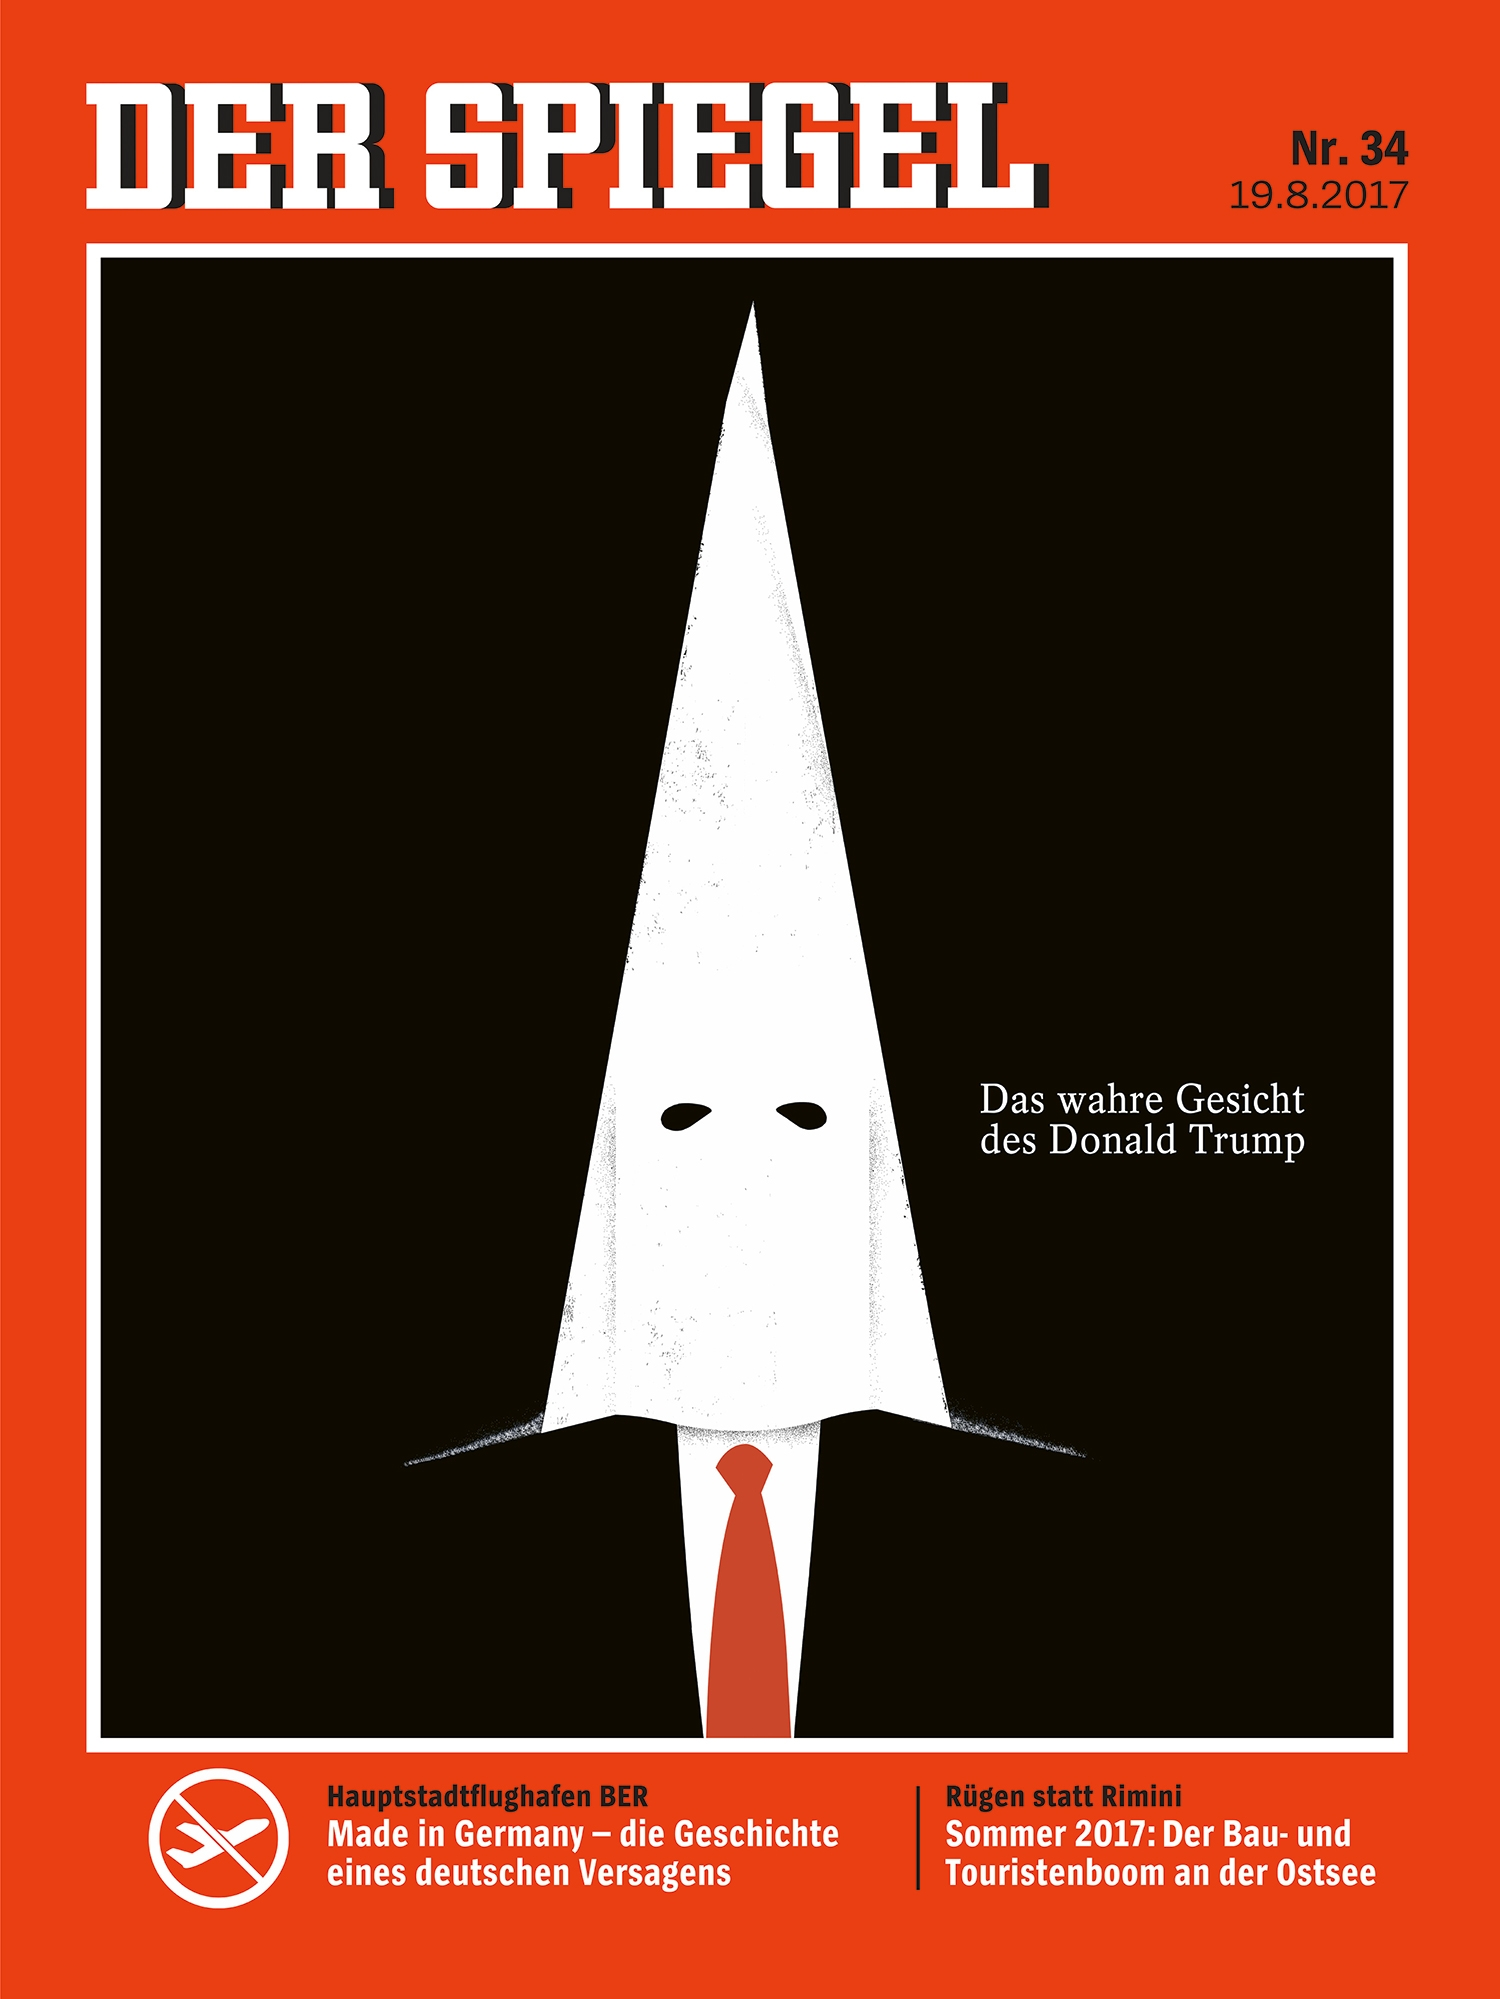 The Illustrator Of Famous Donald Trump Der Spiegel And Time Cover